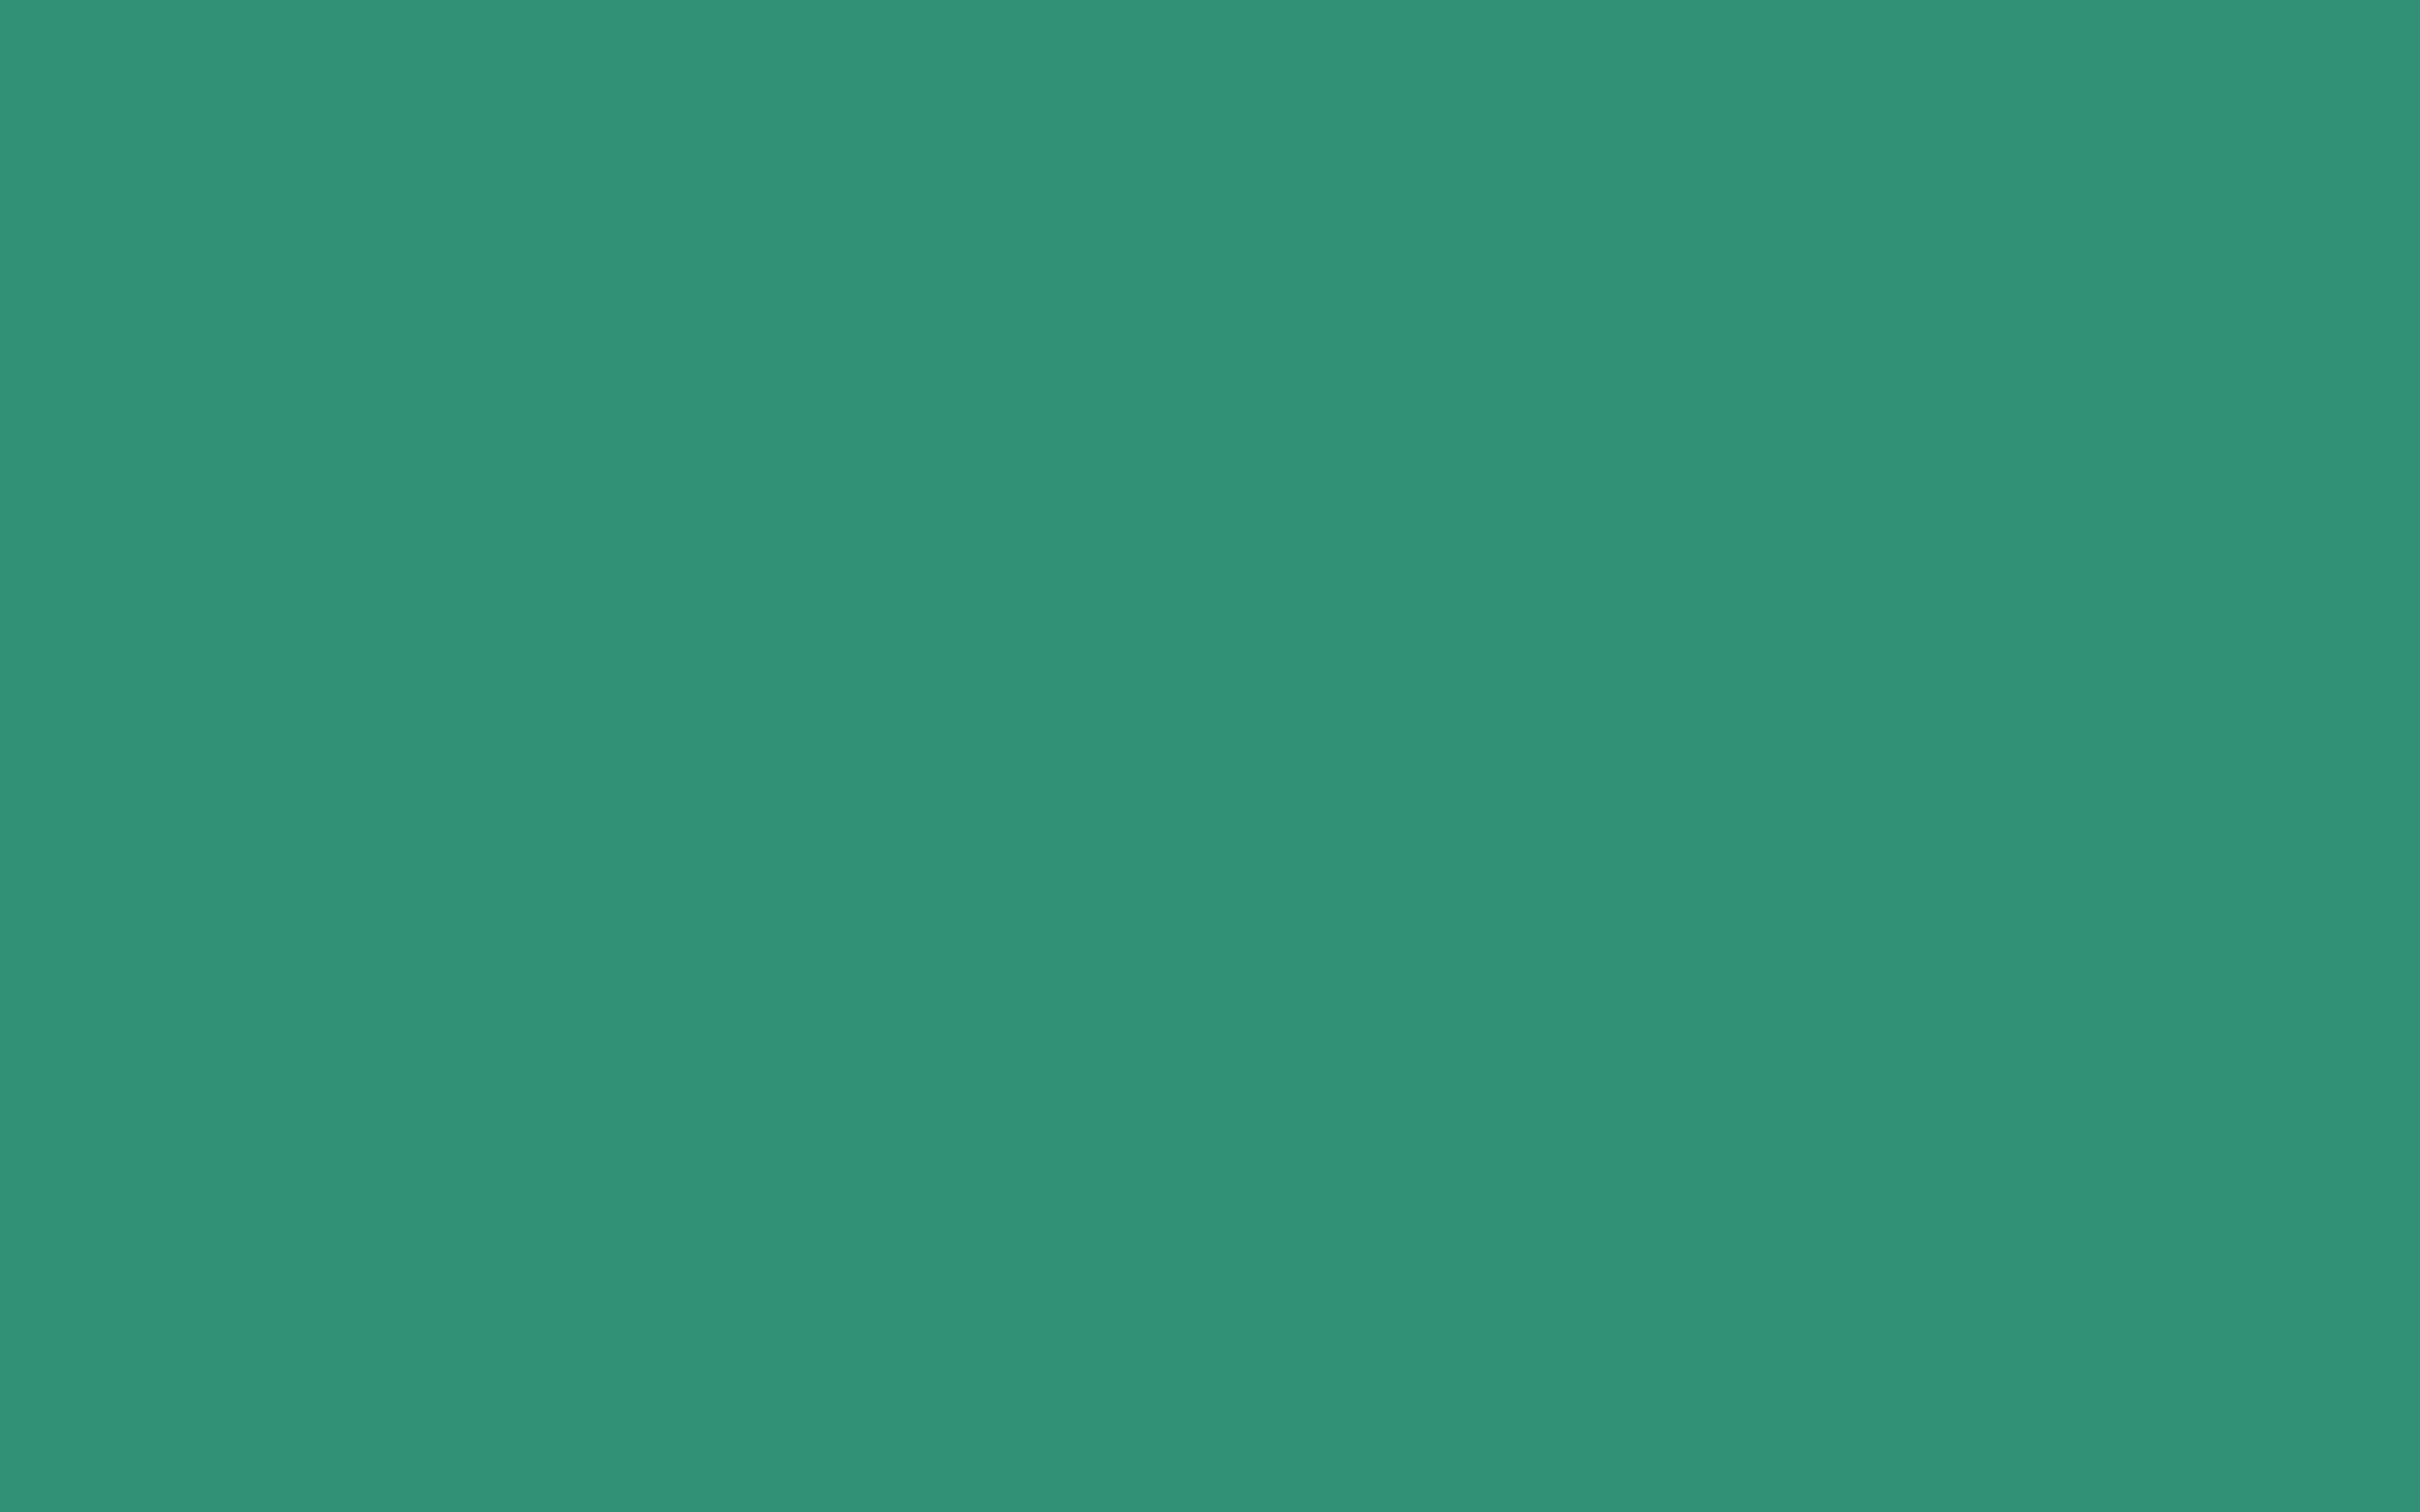 2880x1800 Illuminating Emerald Solid Color Background